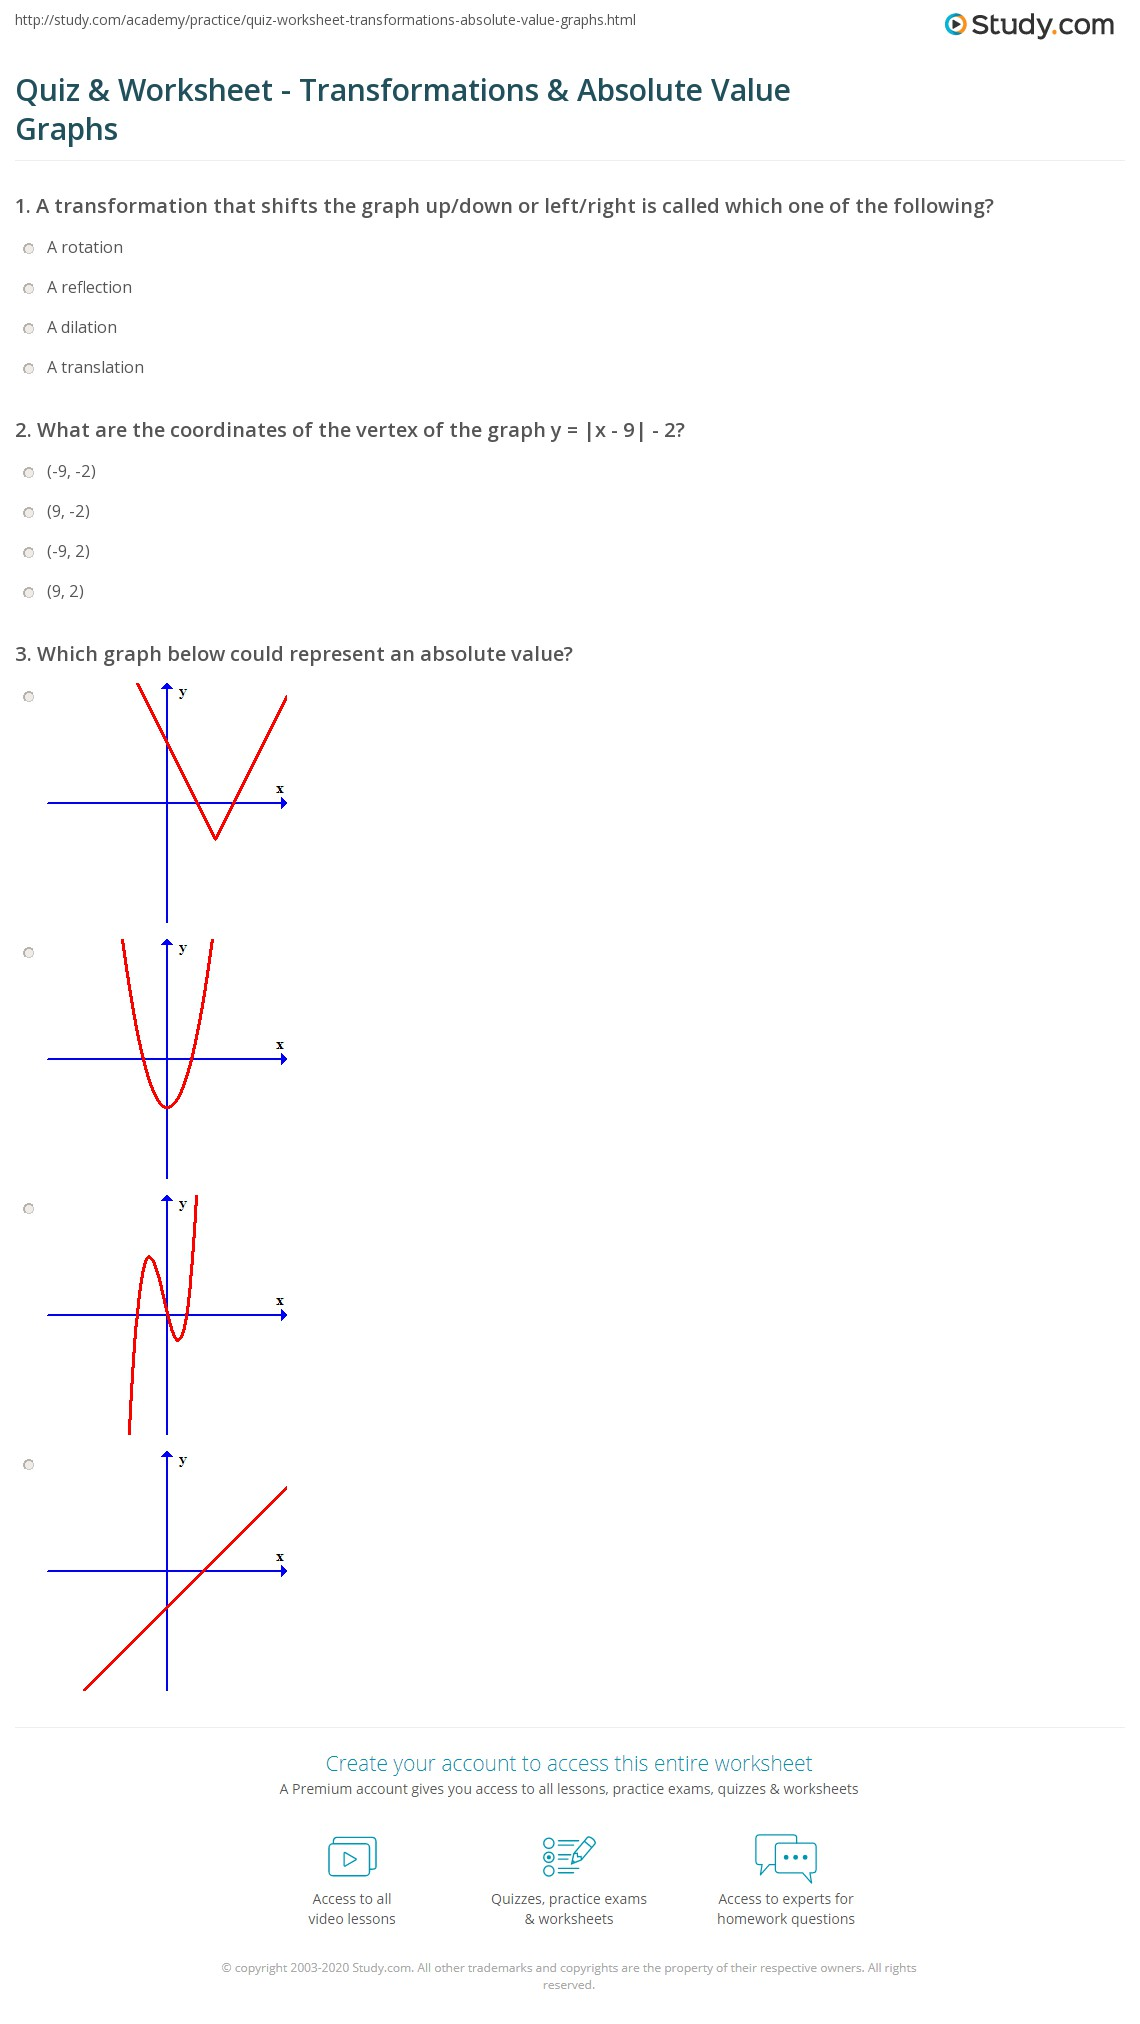 worksheet Graphing Transformations Worksheet quiz worksheet transformations absolute value graphs study com print how to graph an and do worksheet